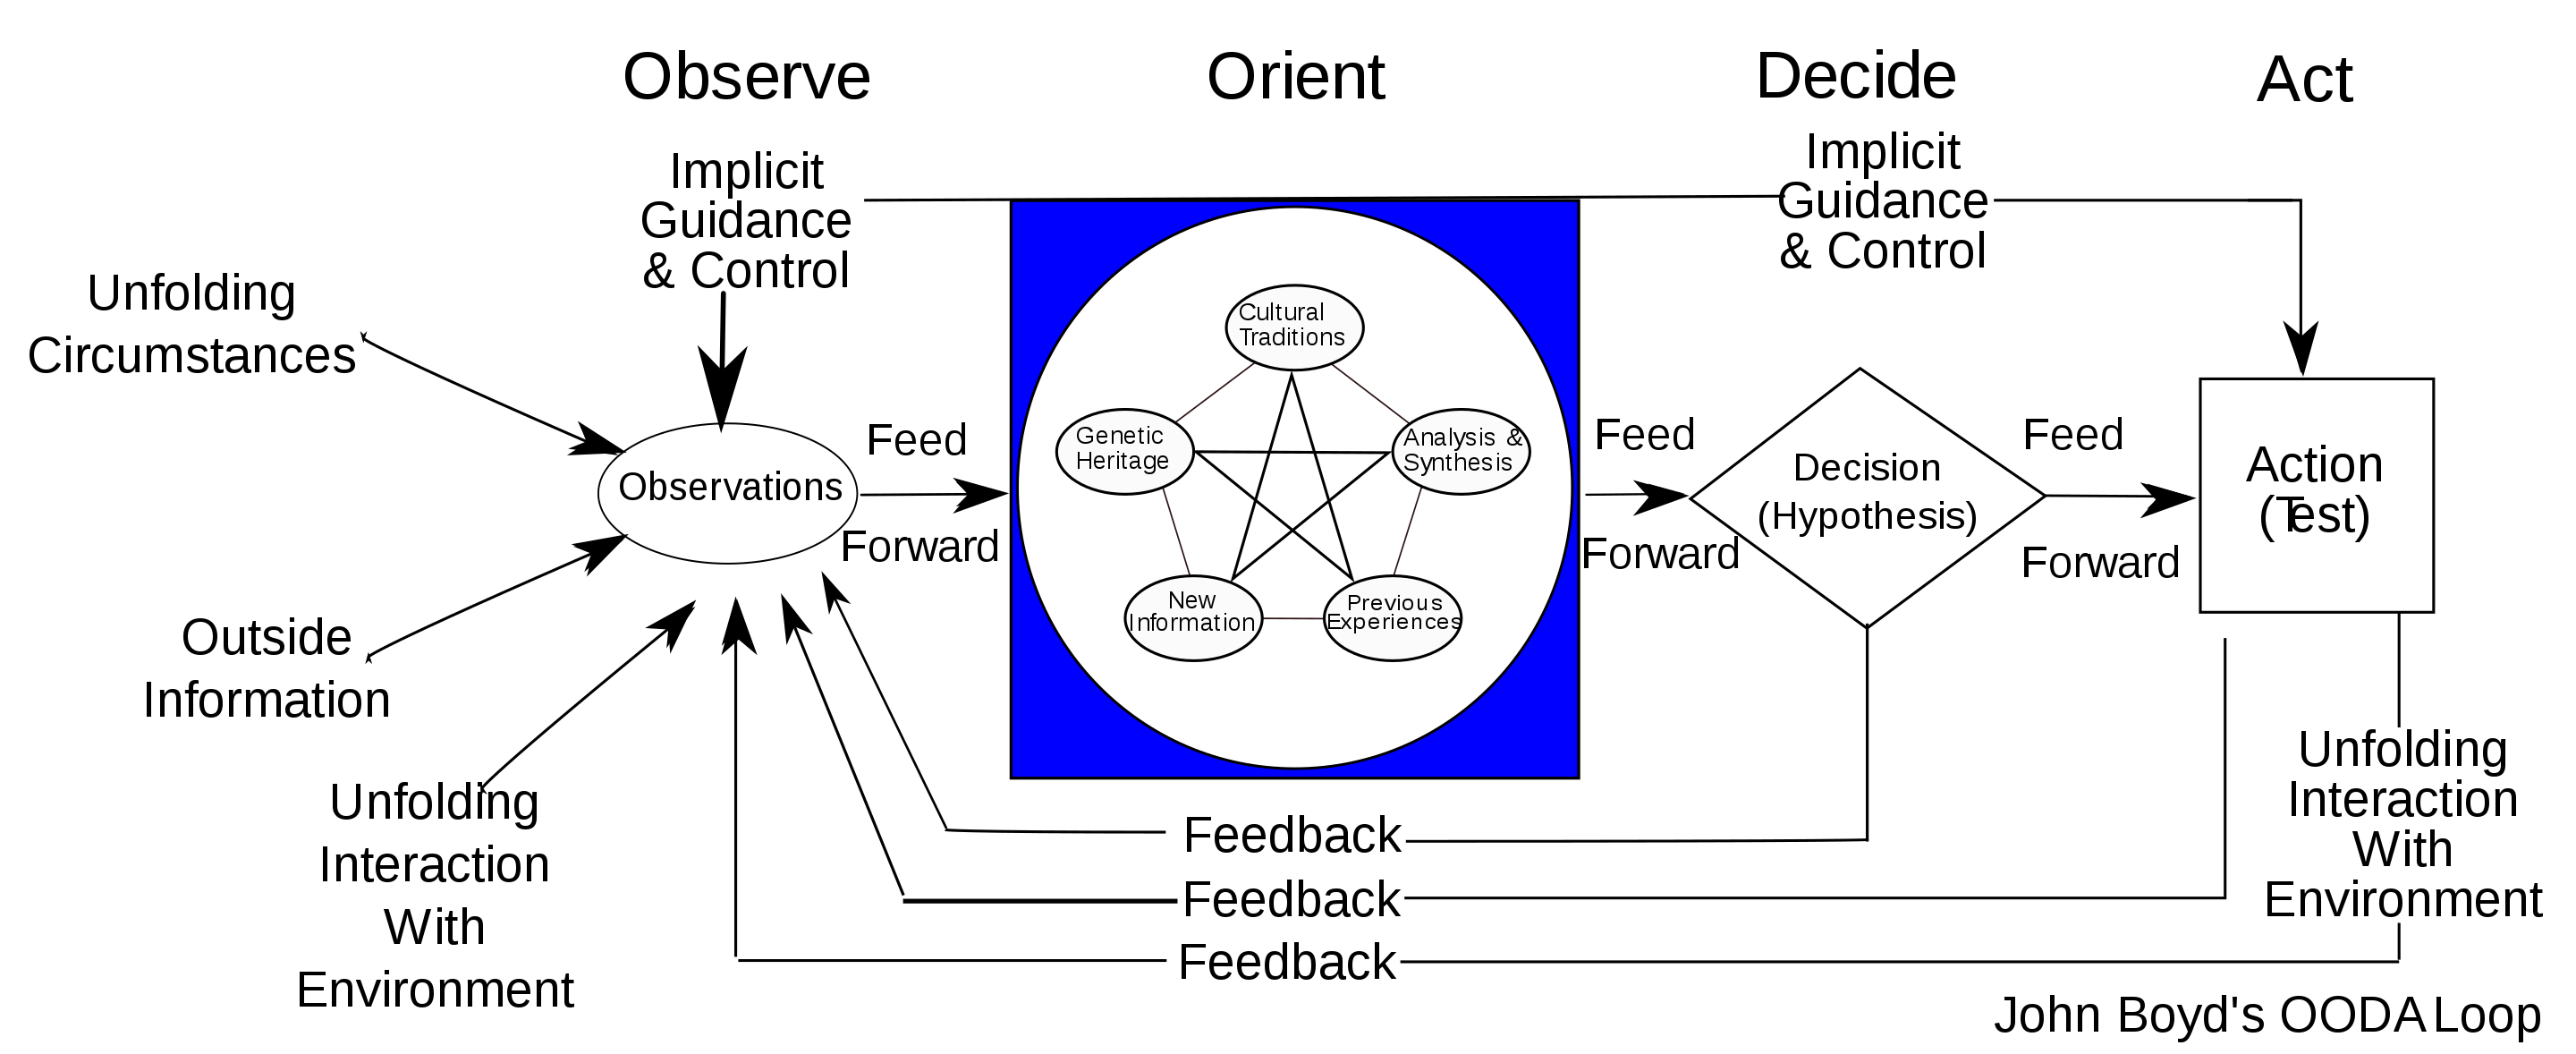 Boyd's OODA loop as a means of overcoming villains on the battle field